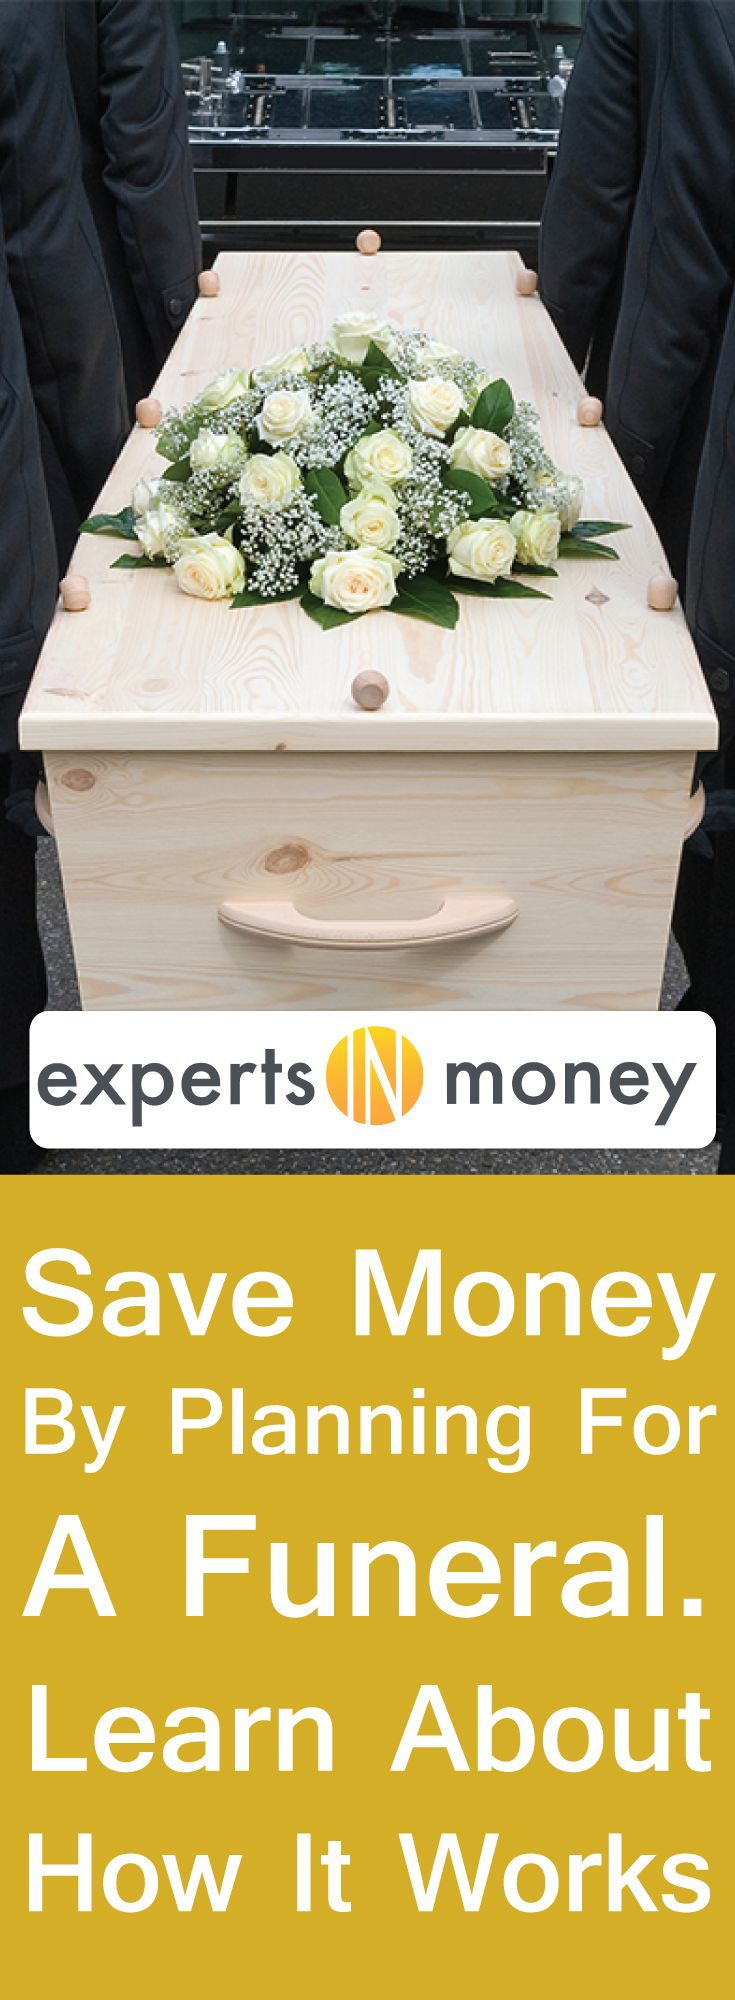 Nowadays, funerals cost an average of £8,126. A funeral plan can protect you from this. Relieving you and your loved ones from financial and emotional stress, it will guarantee the cost of your funeral won't rocket upwards over time. Find out more here.